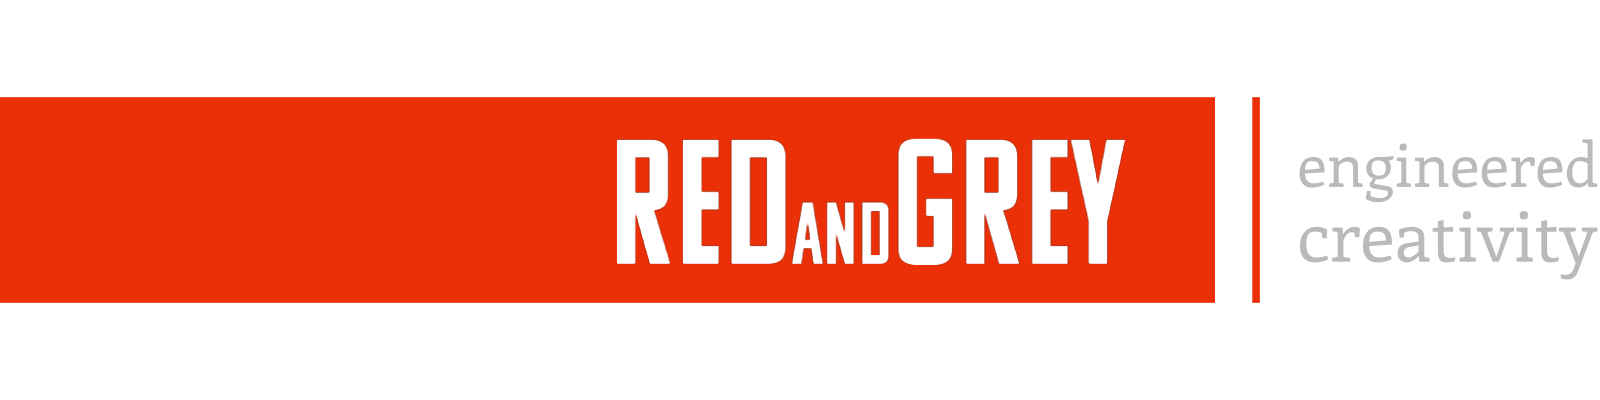 RED and GREY banner fotograf